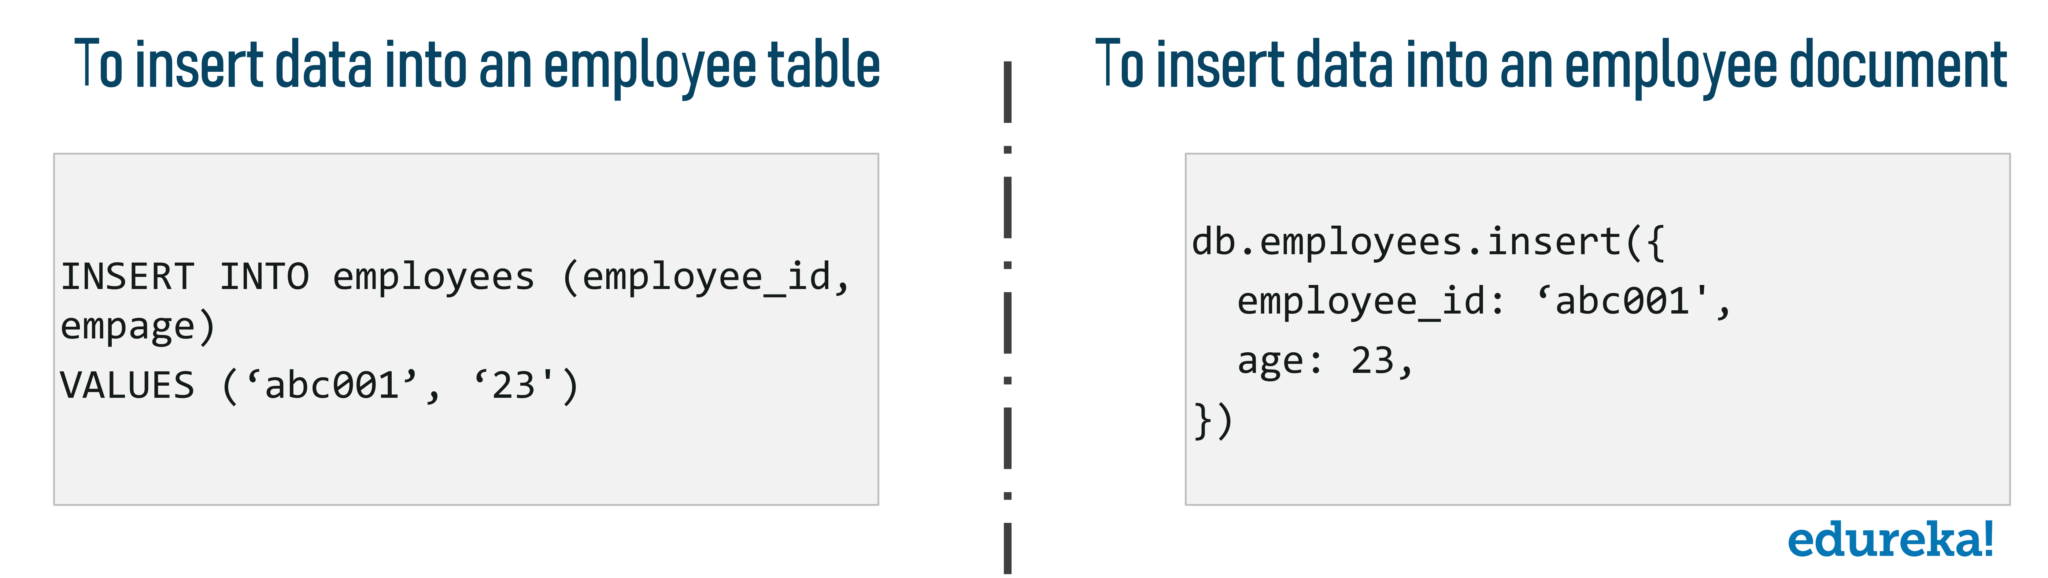 Insert Data - SQL vs NoSQL - Edureka